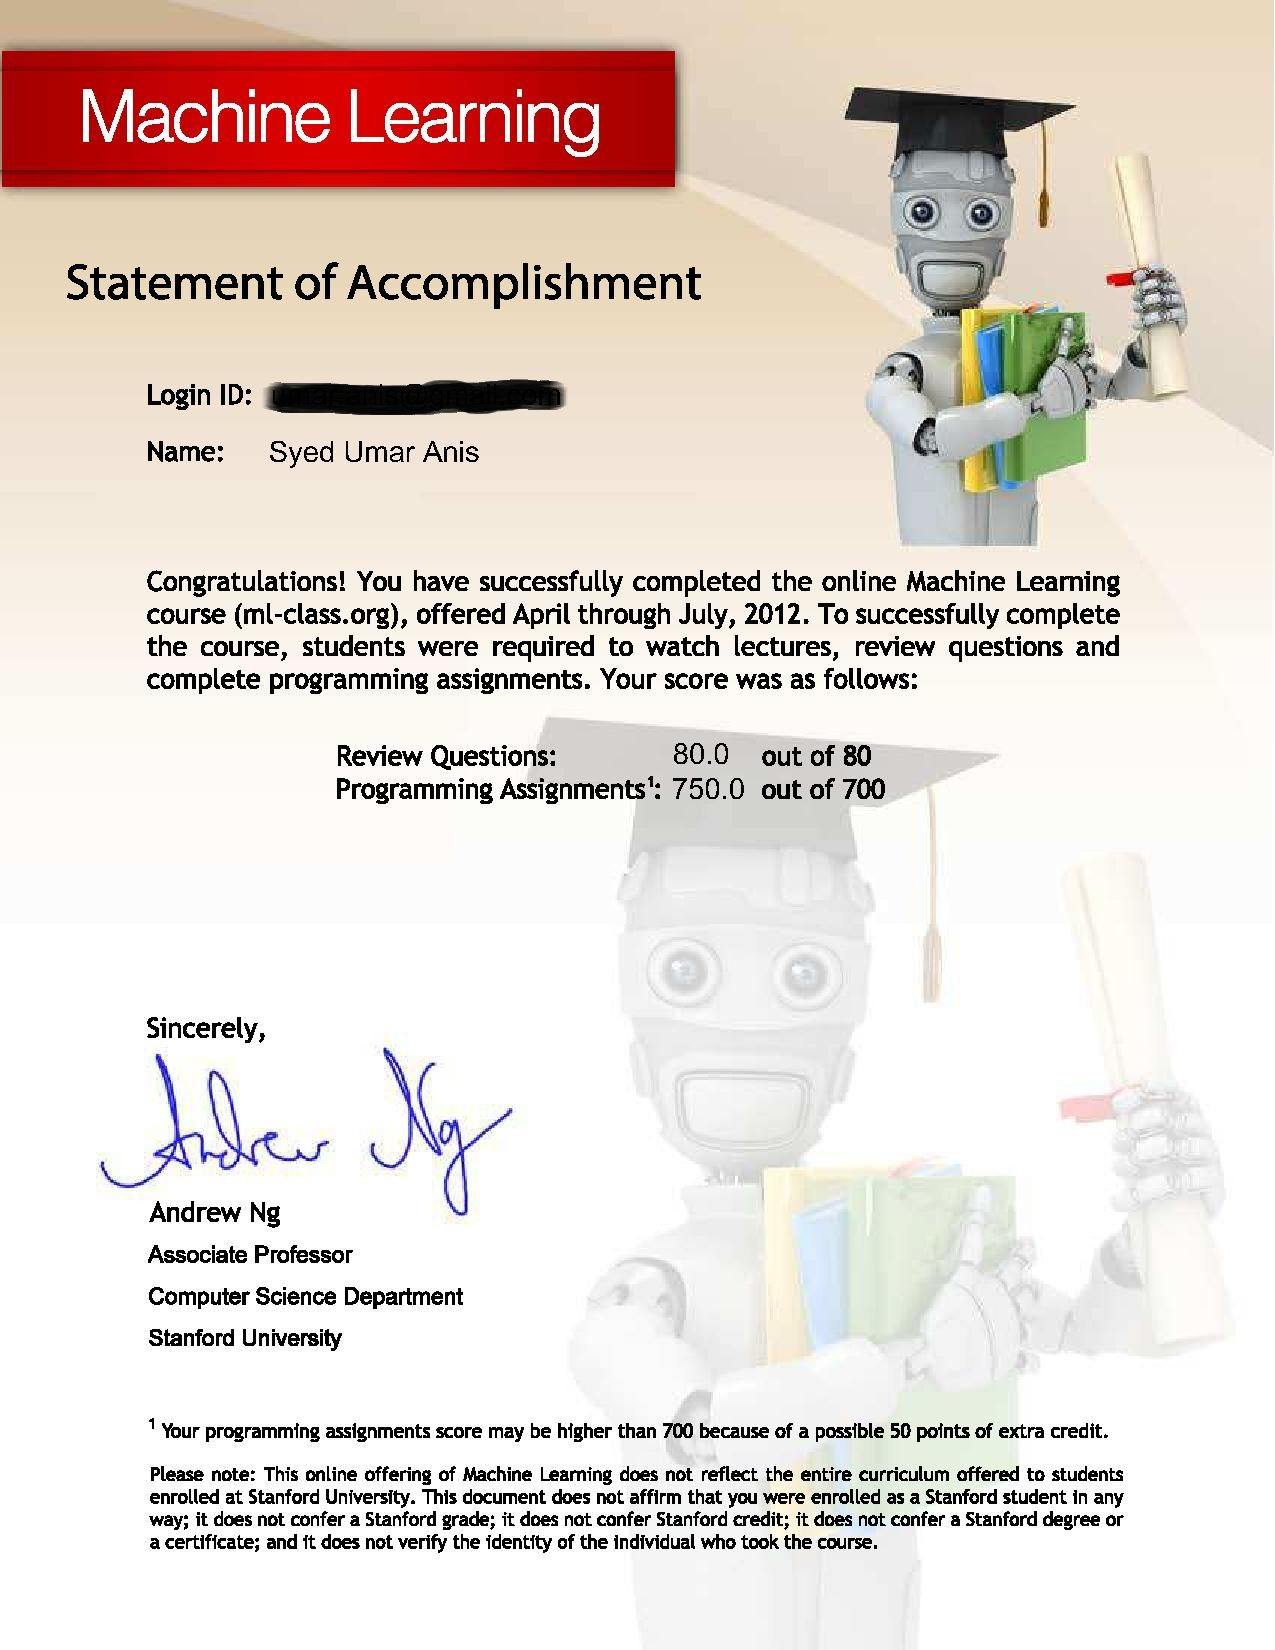 Completed Machine Learning From Coursera Syed Umar Anis